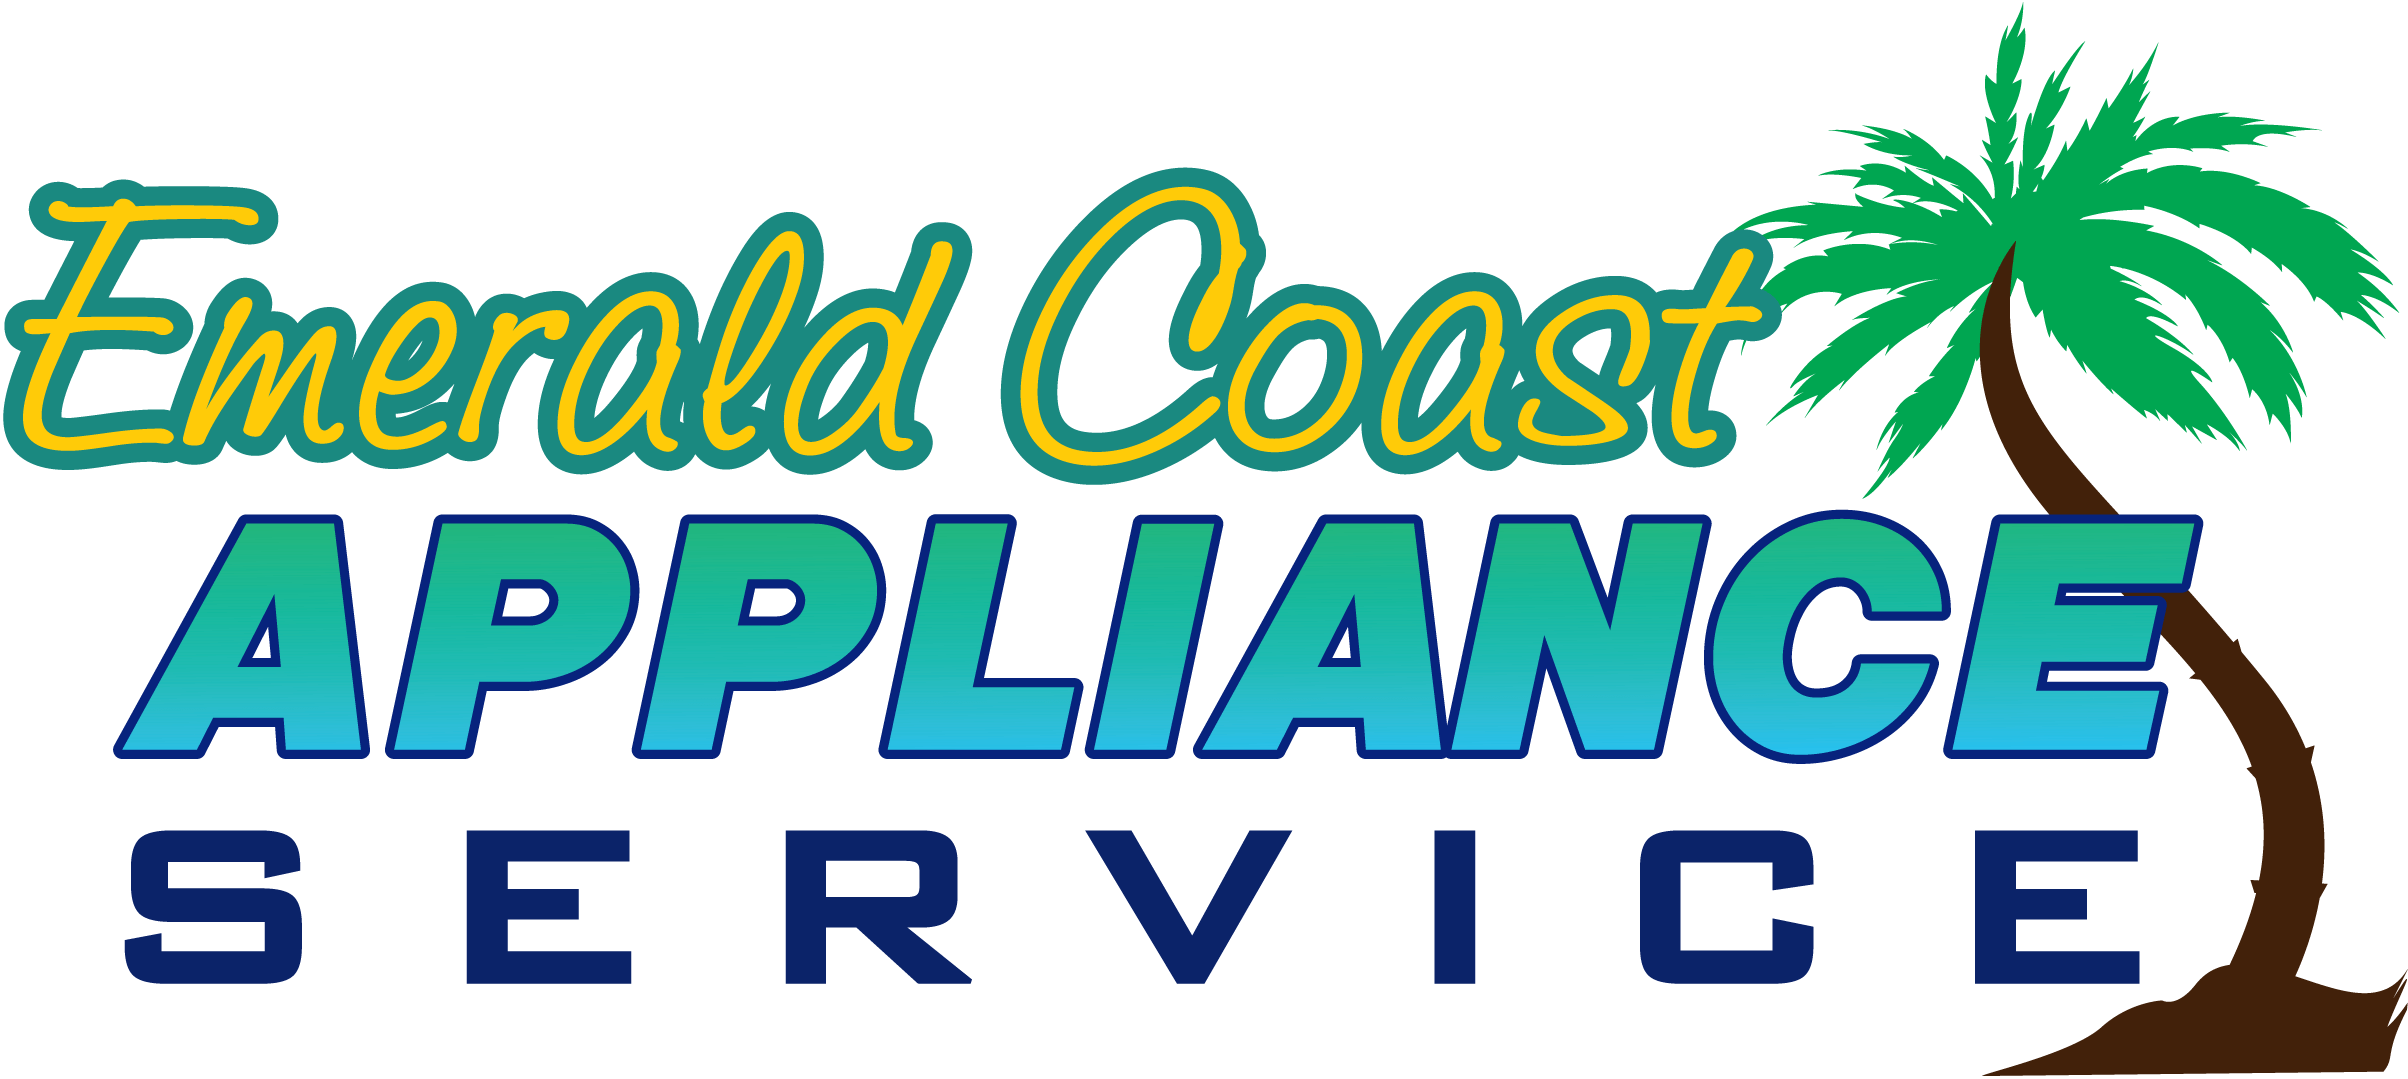 Appliance Repair Service in Destin Florida